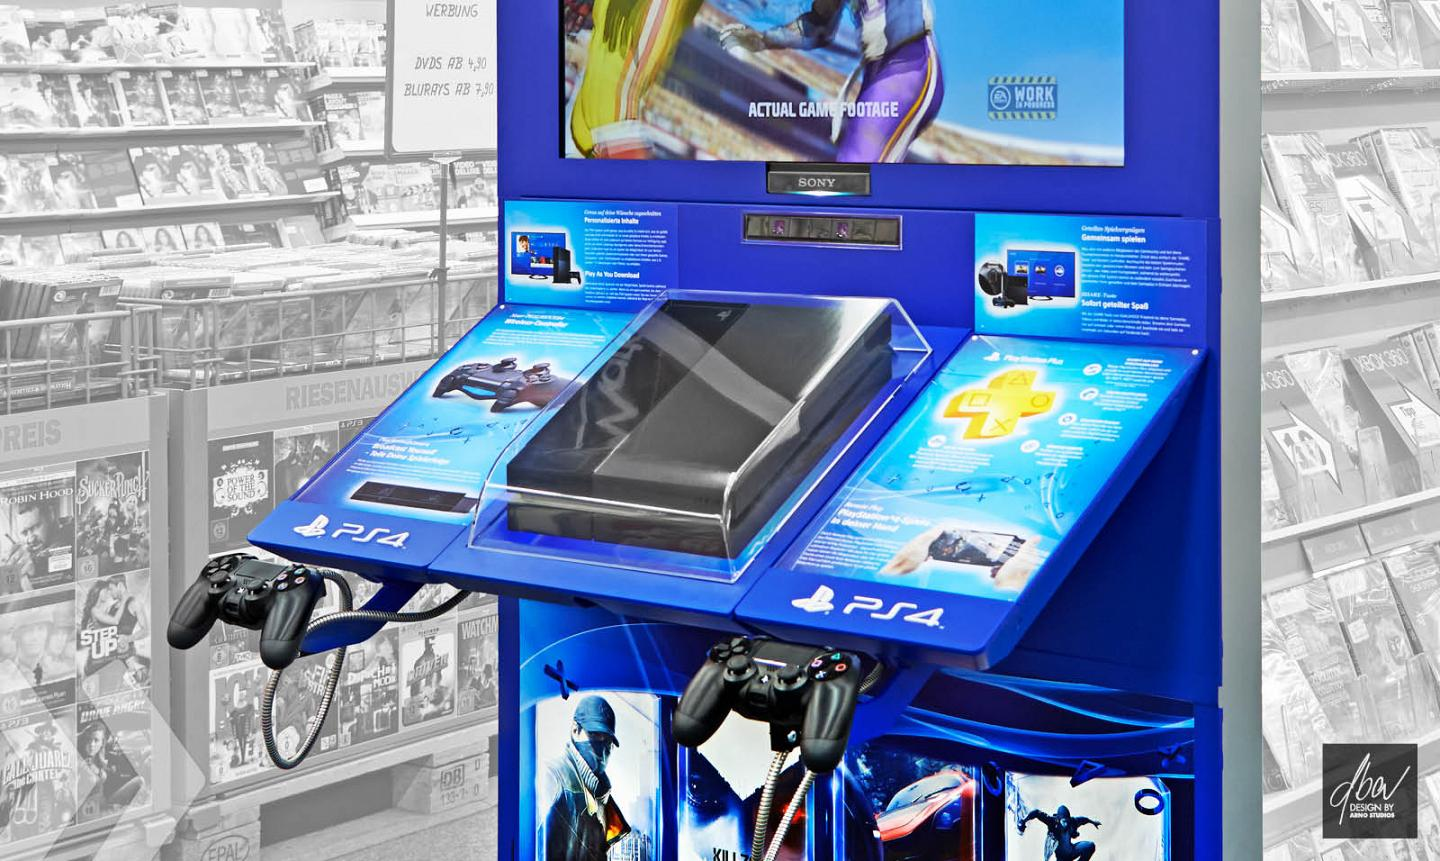 Sony Playstation 4 Display - Bild 03